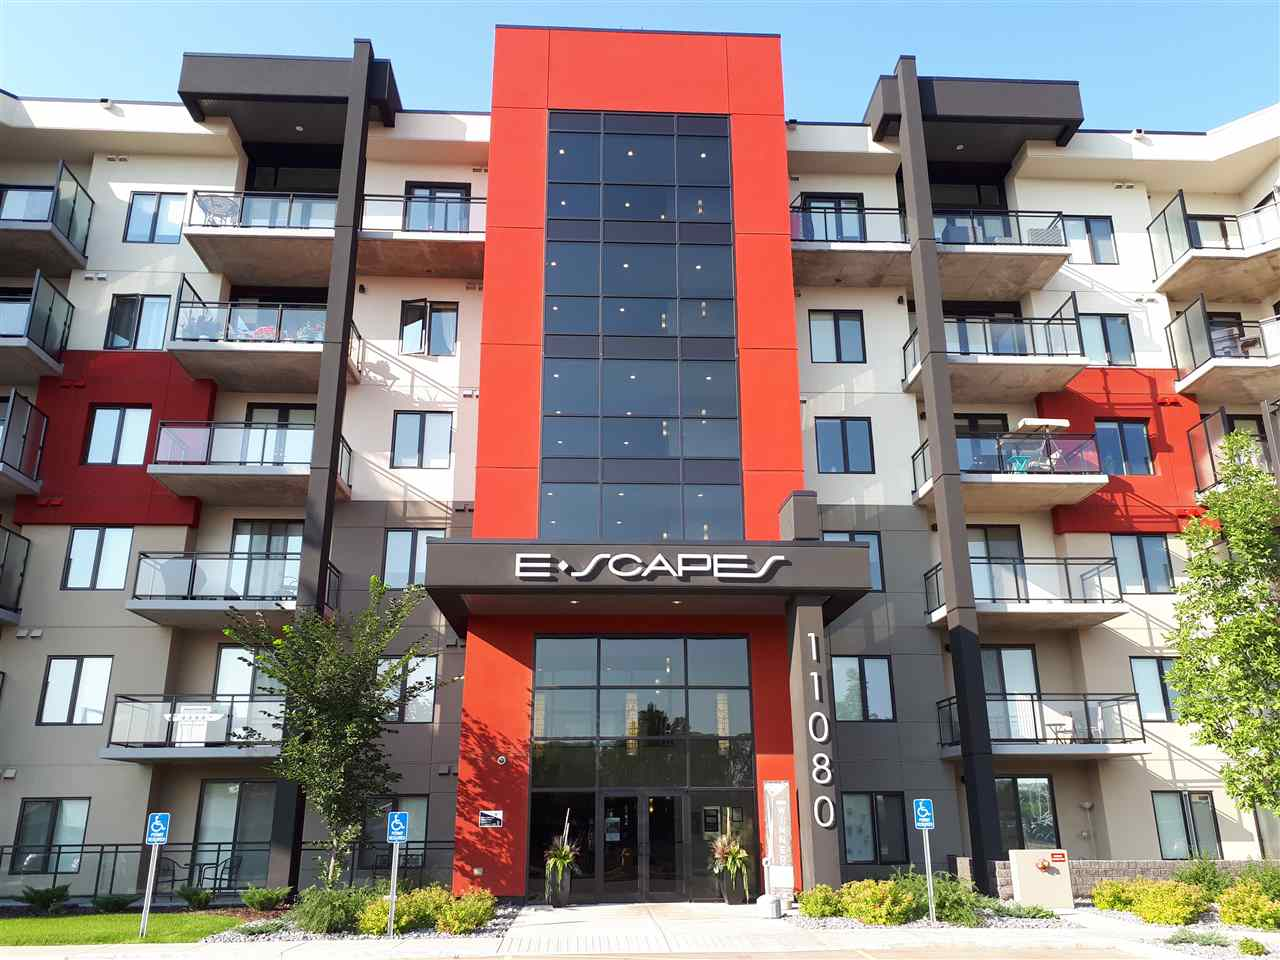 Main Photo: 120 11080 ELLERSLIE Road in Edmonton: Zone 55 Condo for sale : MLS®# E4103838